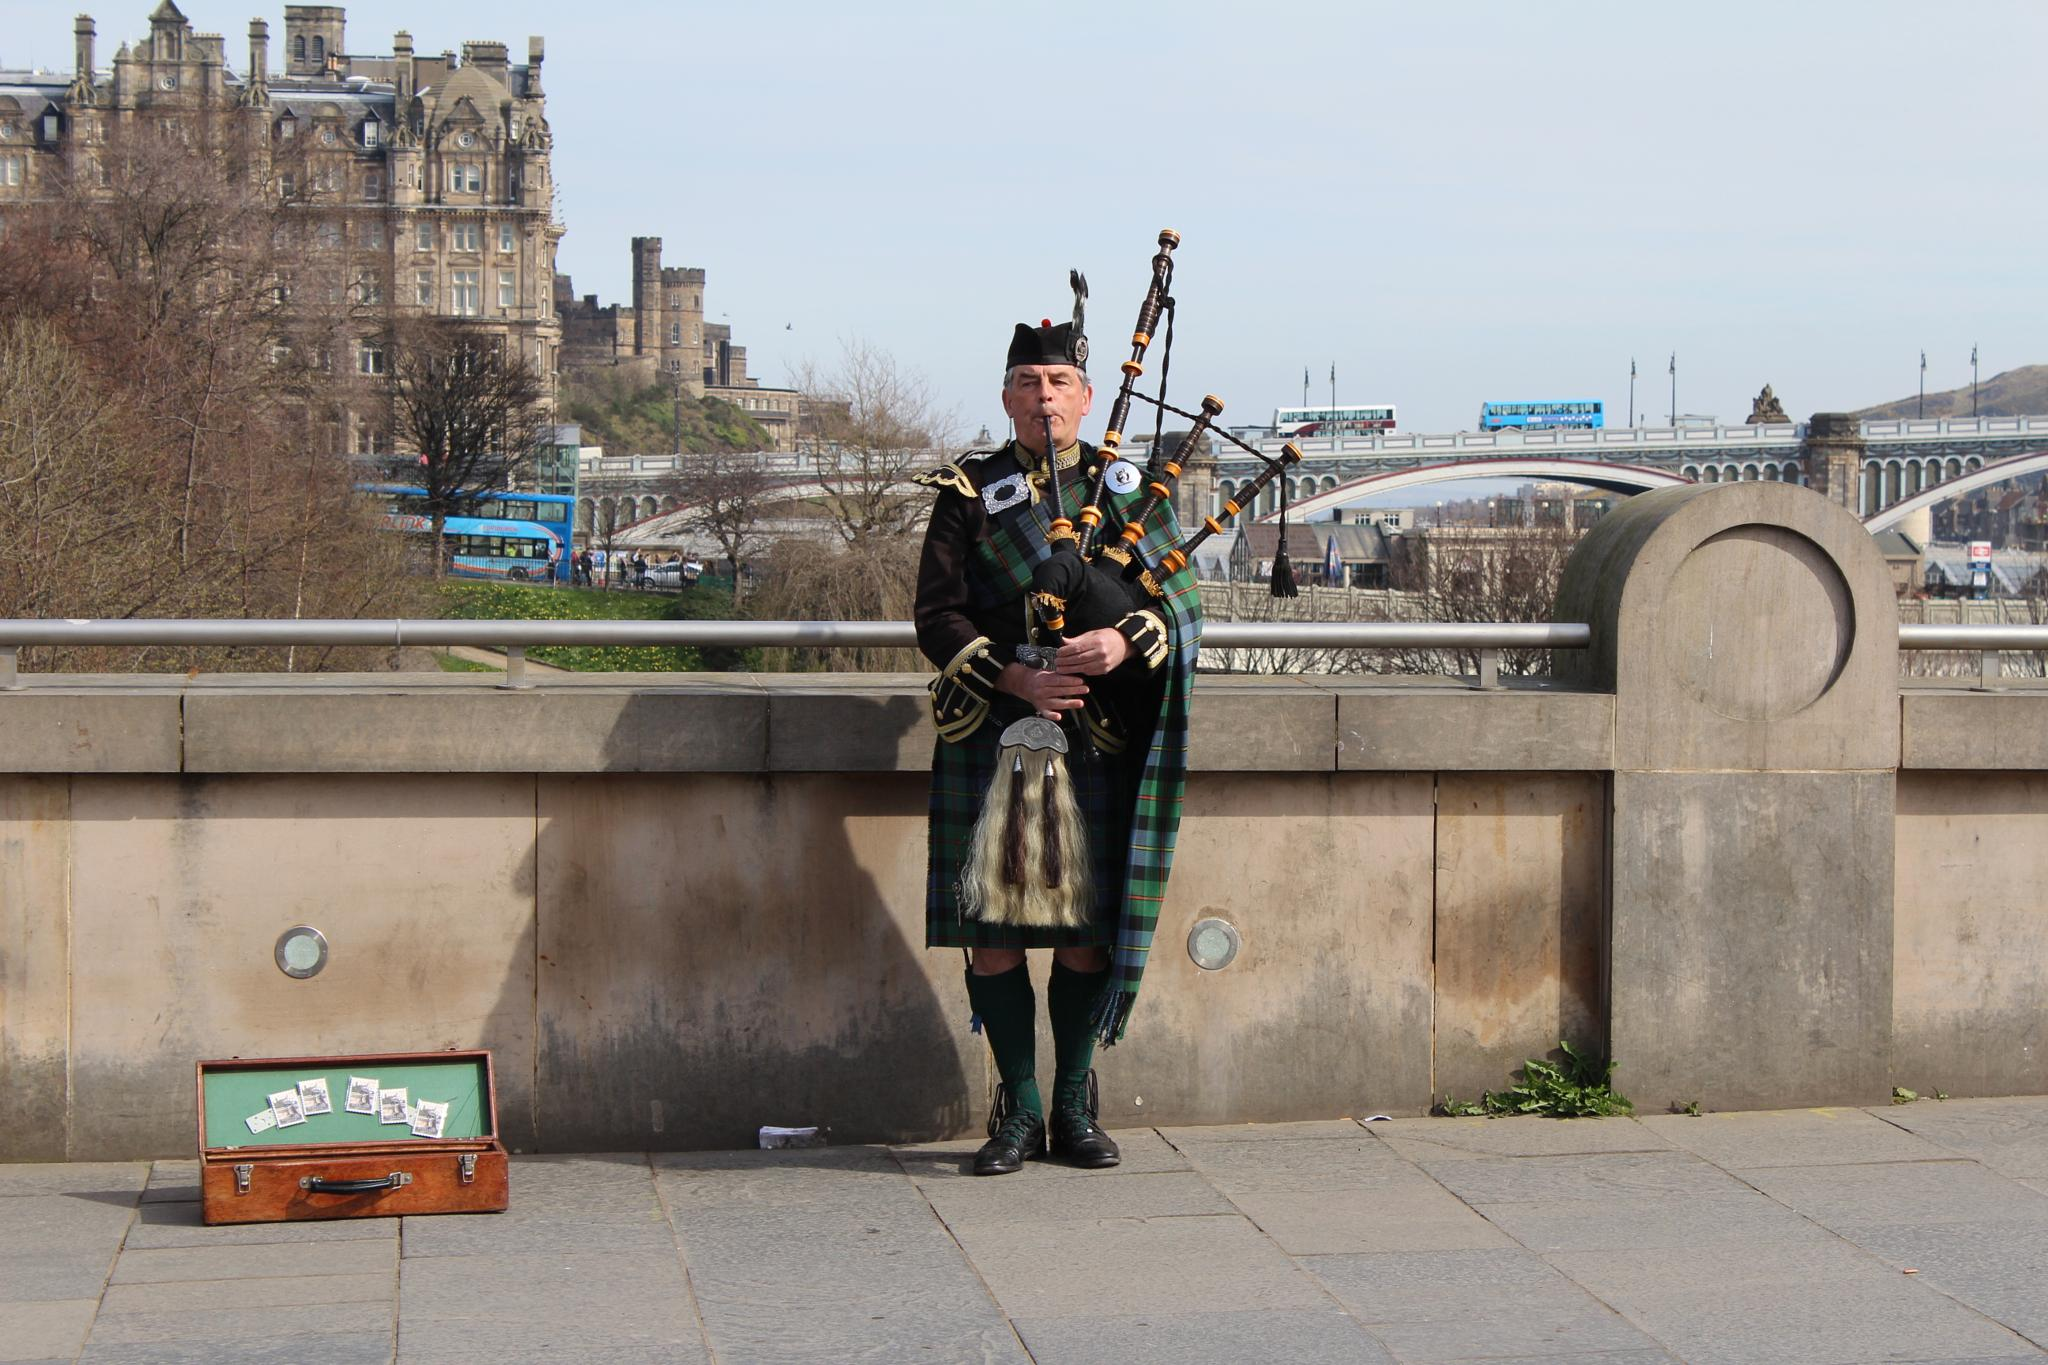 Scots Piper by karl.green1